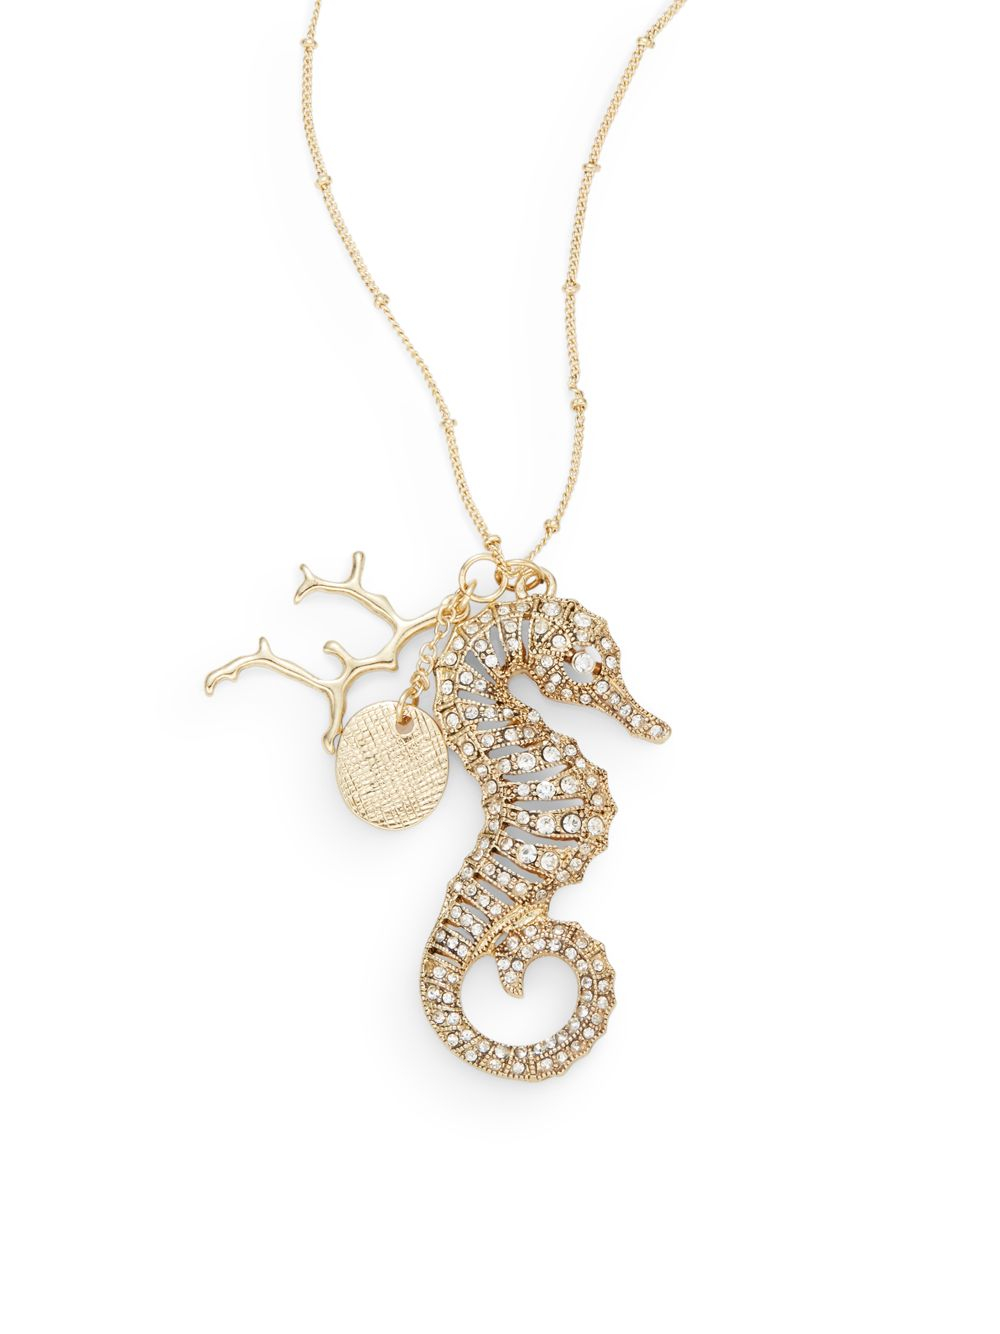 Lyst saks fifth avenue seahorse pendant necklace in metallic gallery mozeypictures Images